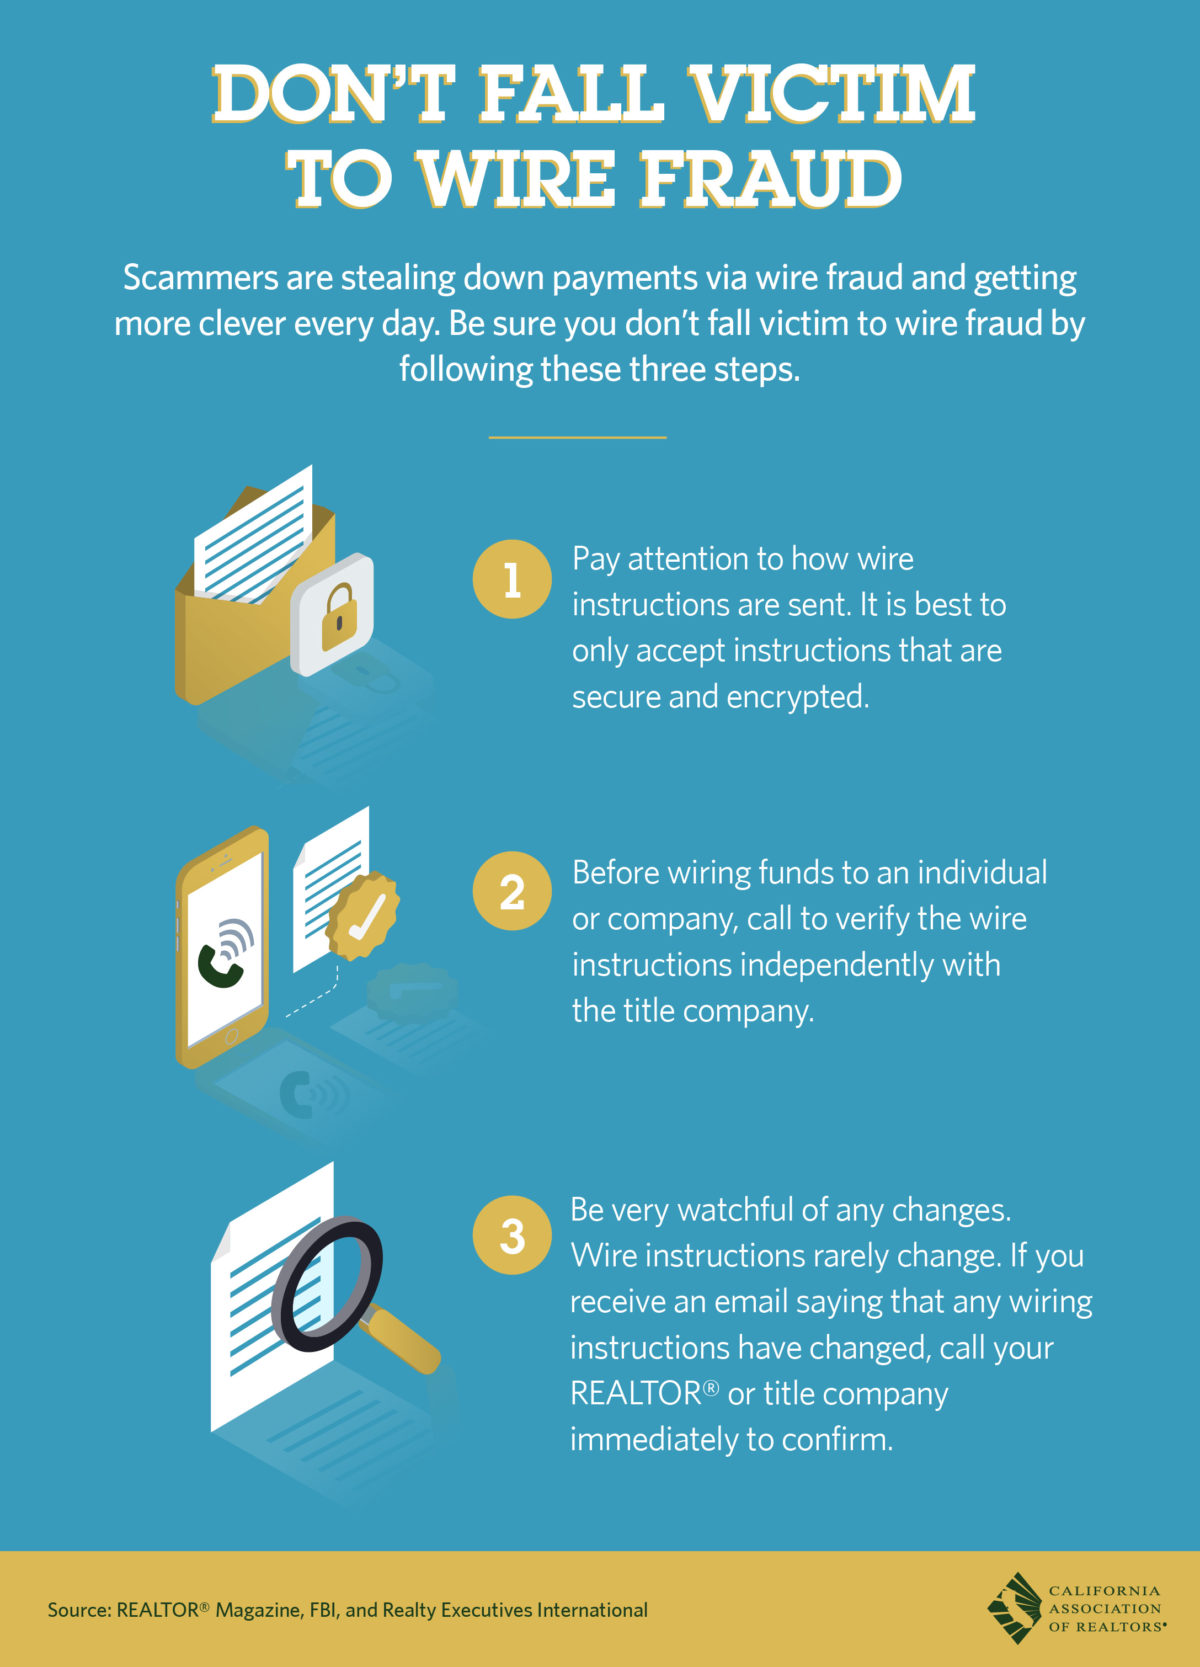 Follow These Simple Rules & Don't Fall Victim to Wire Fraud